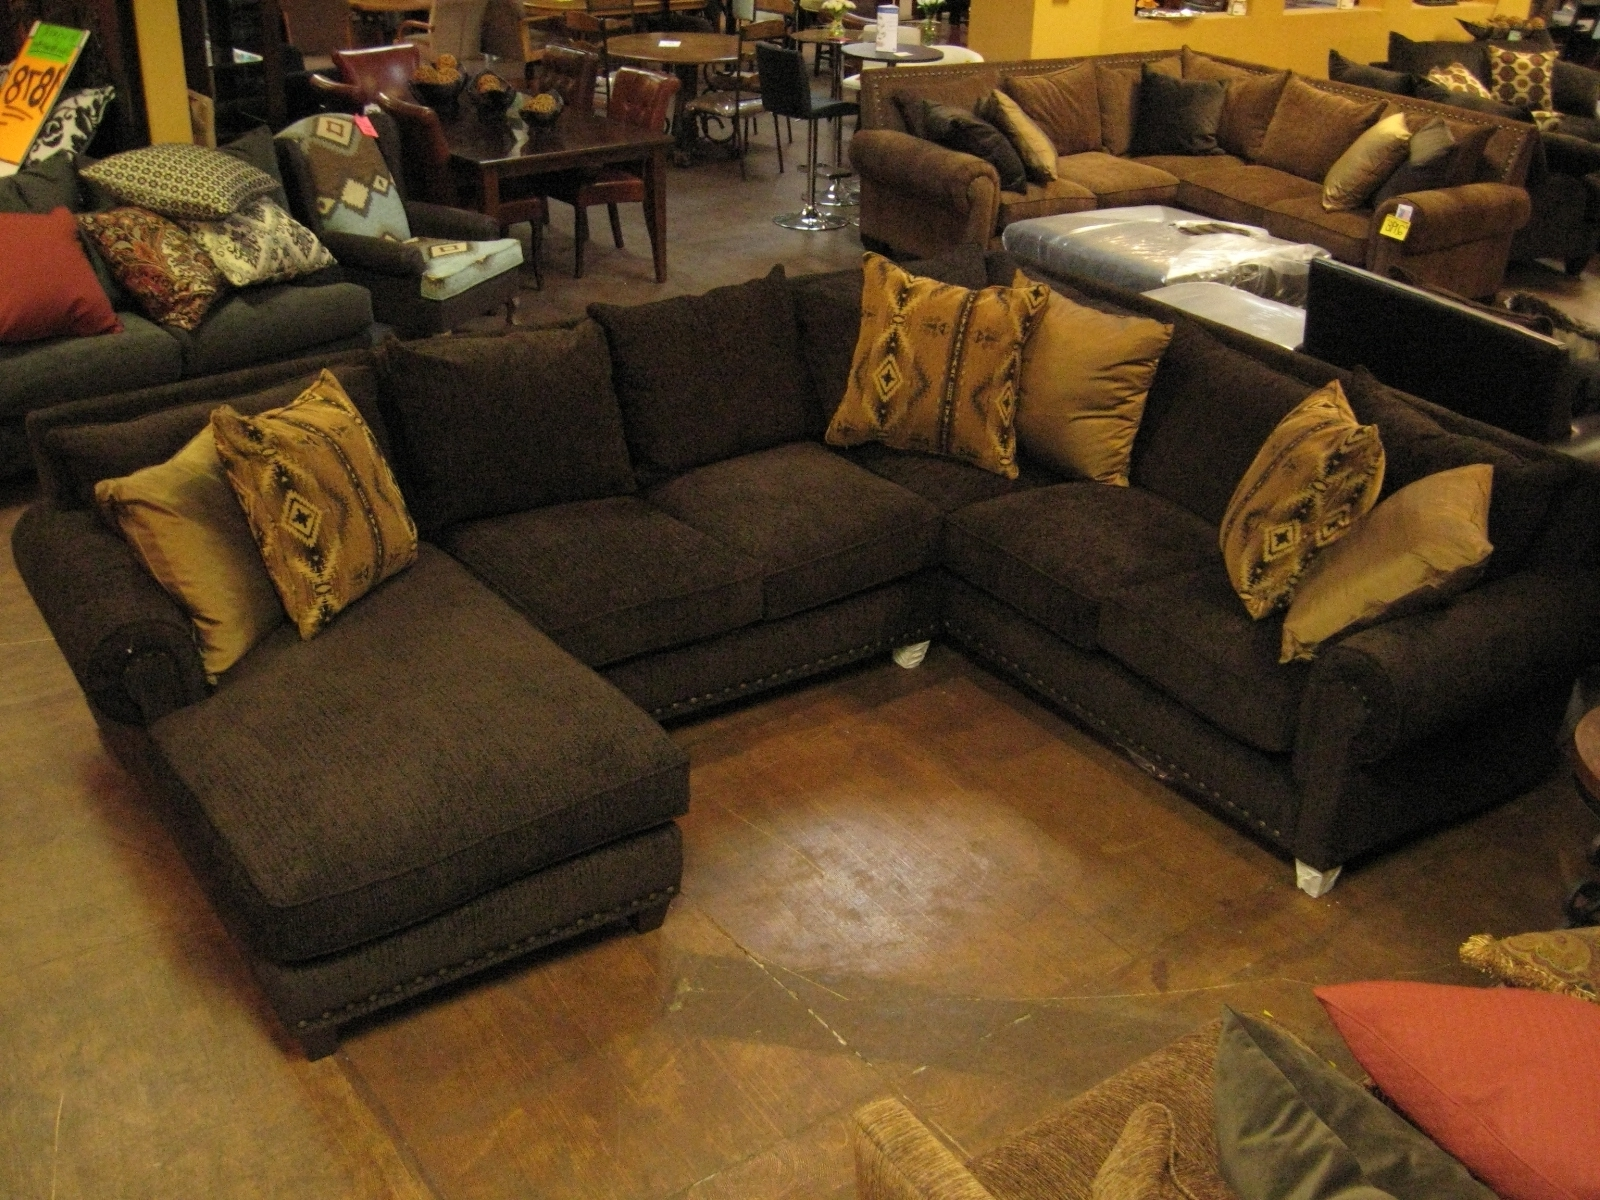 Well Liked Wide Seat Sectional Sofas With Regard To Awesome Deep Couches Design — Cabinets, Beds, Sofas And (View 5 of 20)